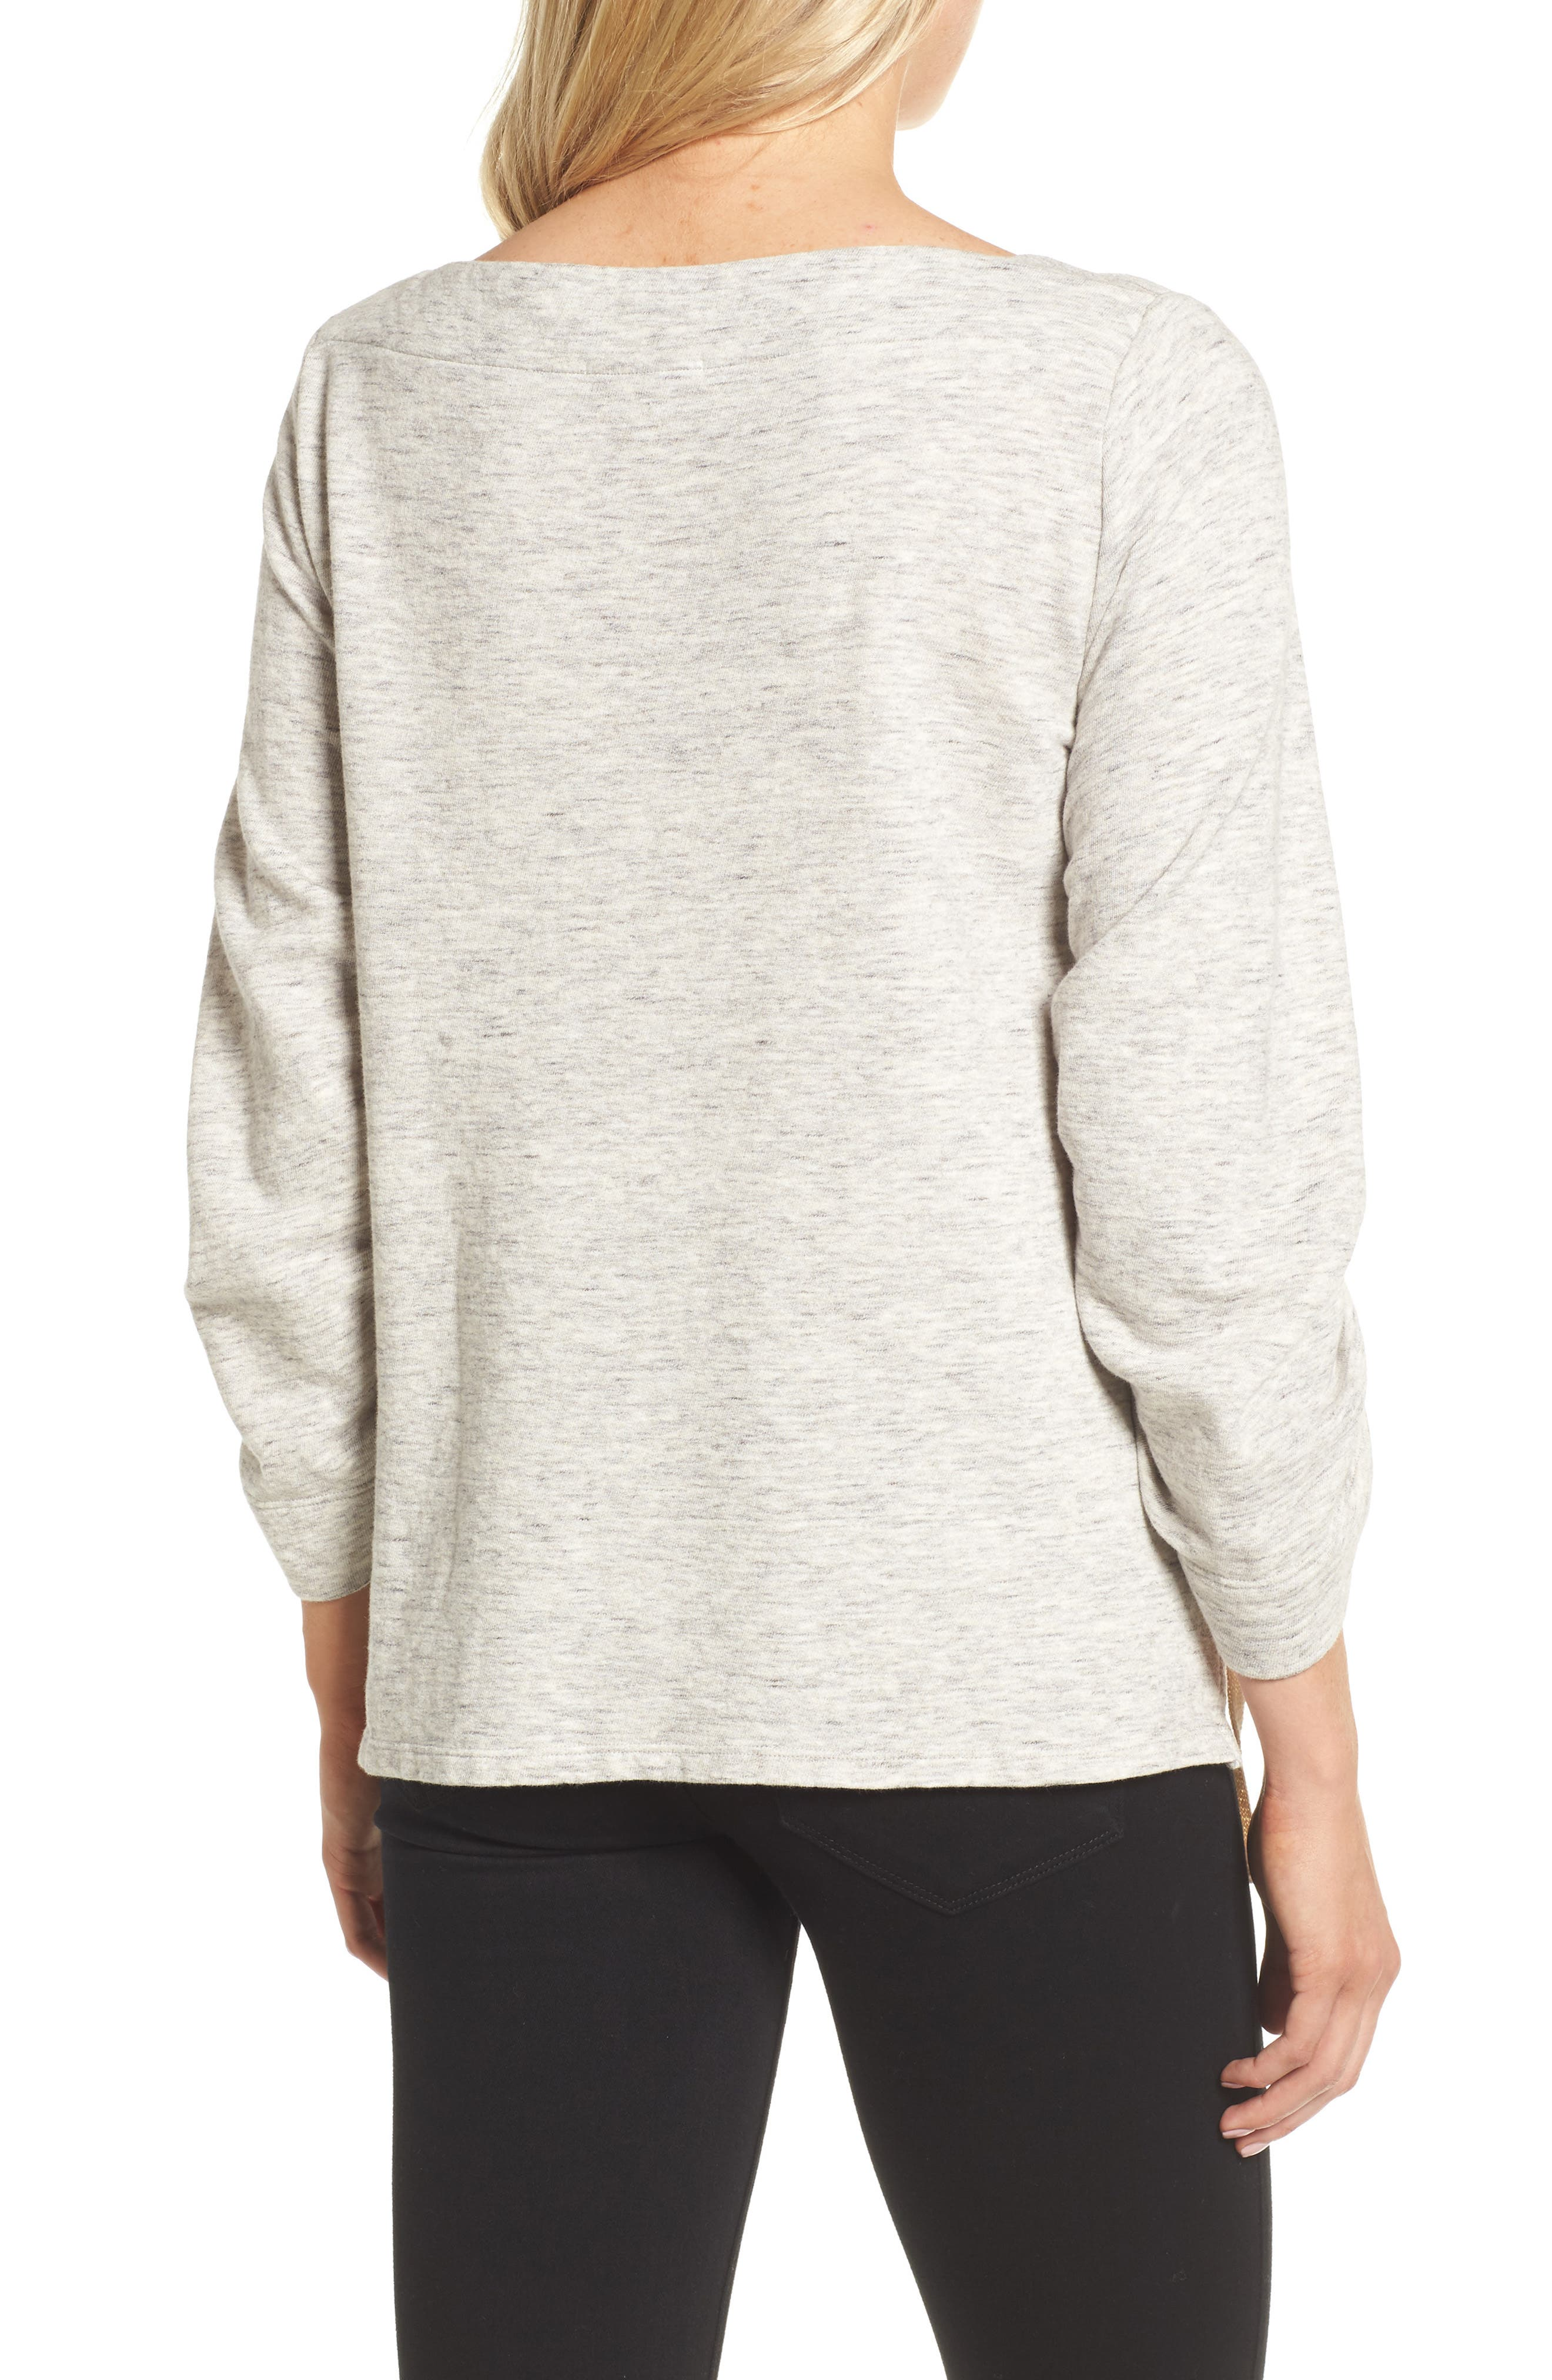 Ruched Sleeve Sweatshirt,                             Alternate thumbnail 2, color,                             Heather Grey